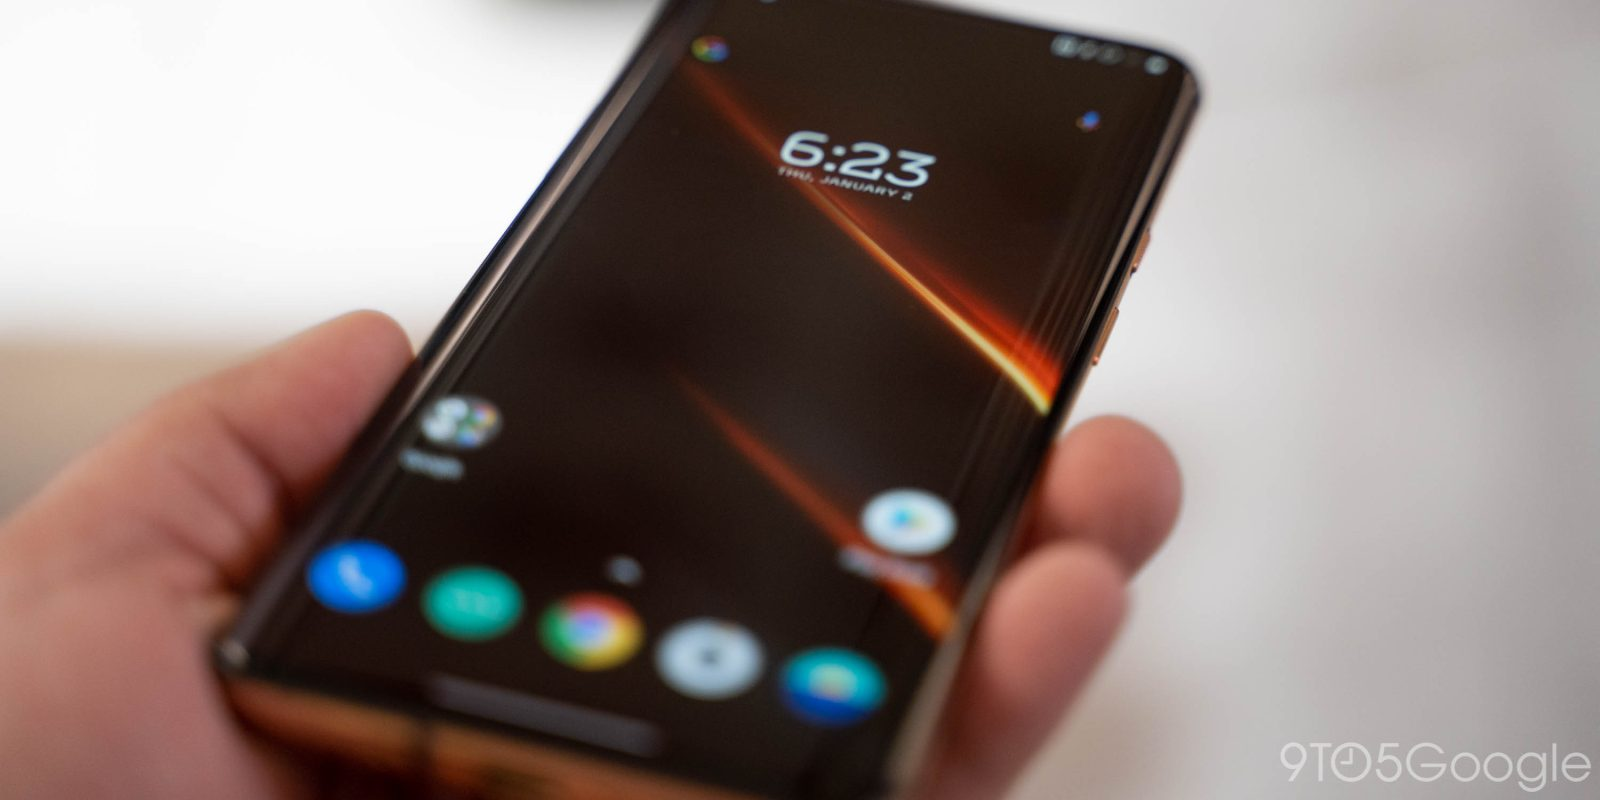 OnePlus shows off just how smooth its 120 Hz display will be